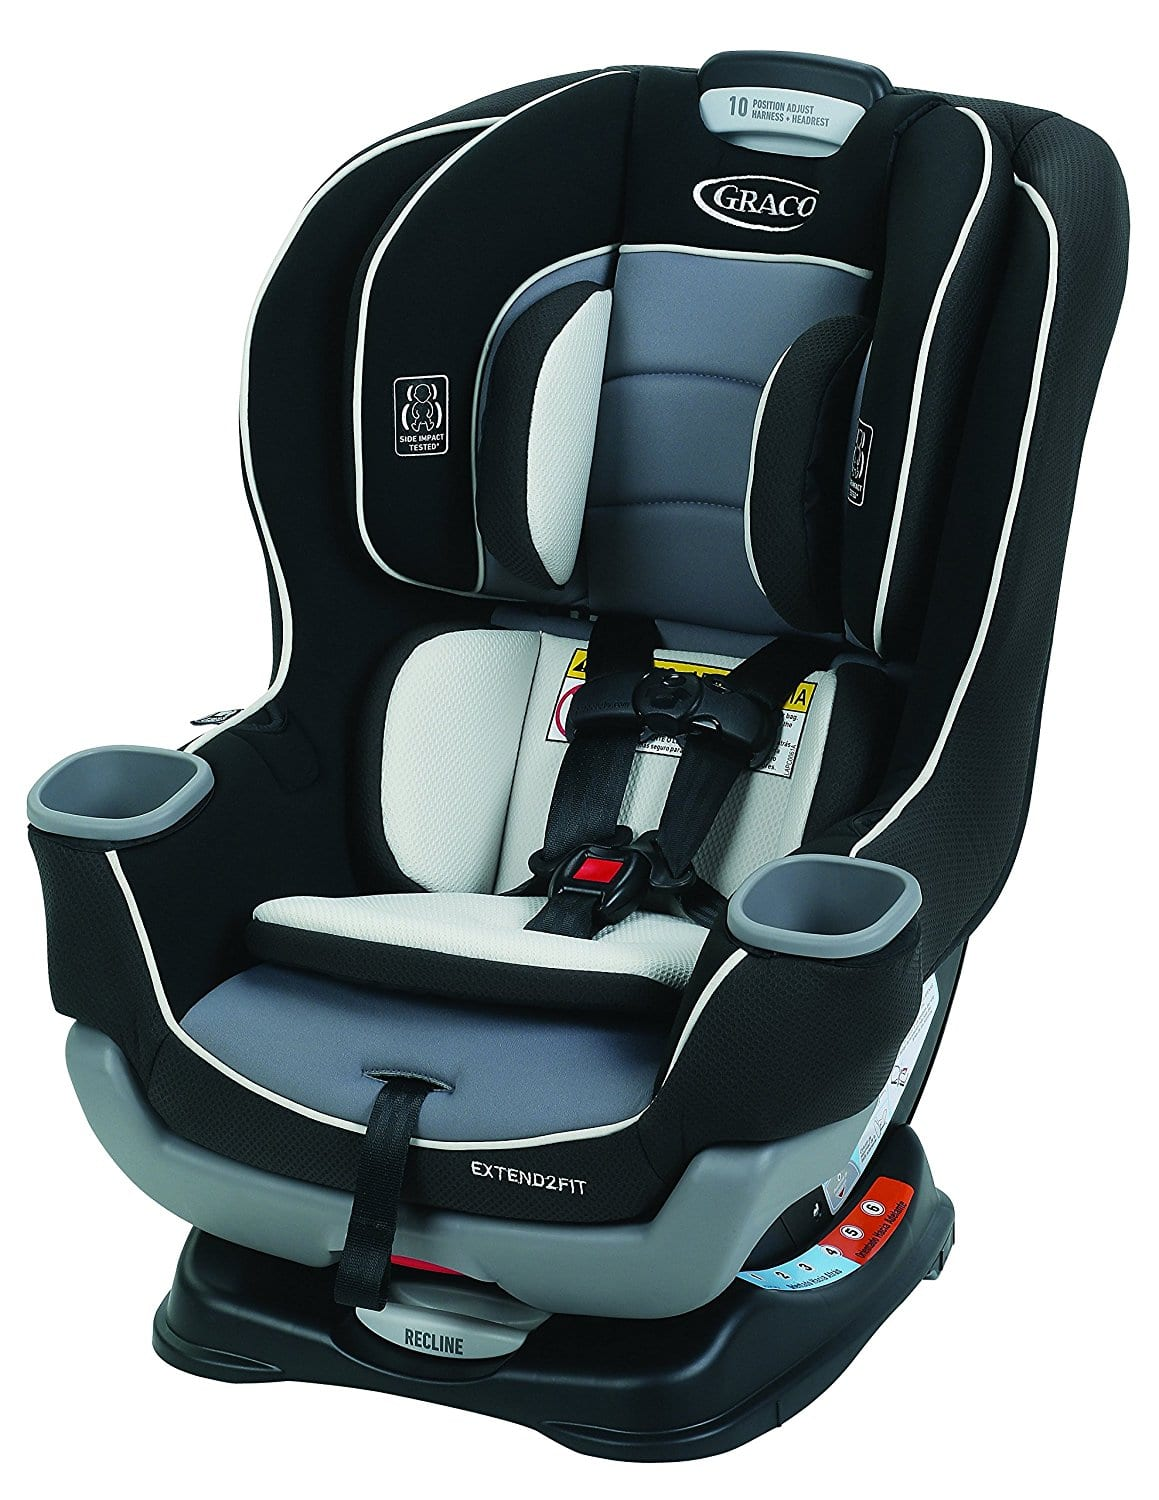 Graco Extend2Fit Convertible Car Seat (Gotham) $101.31 + Free Shipping